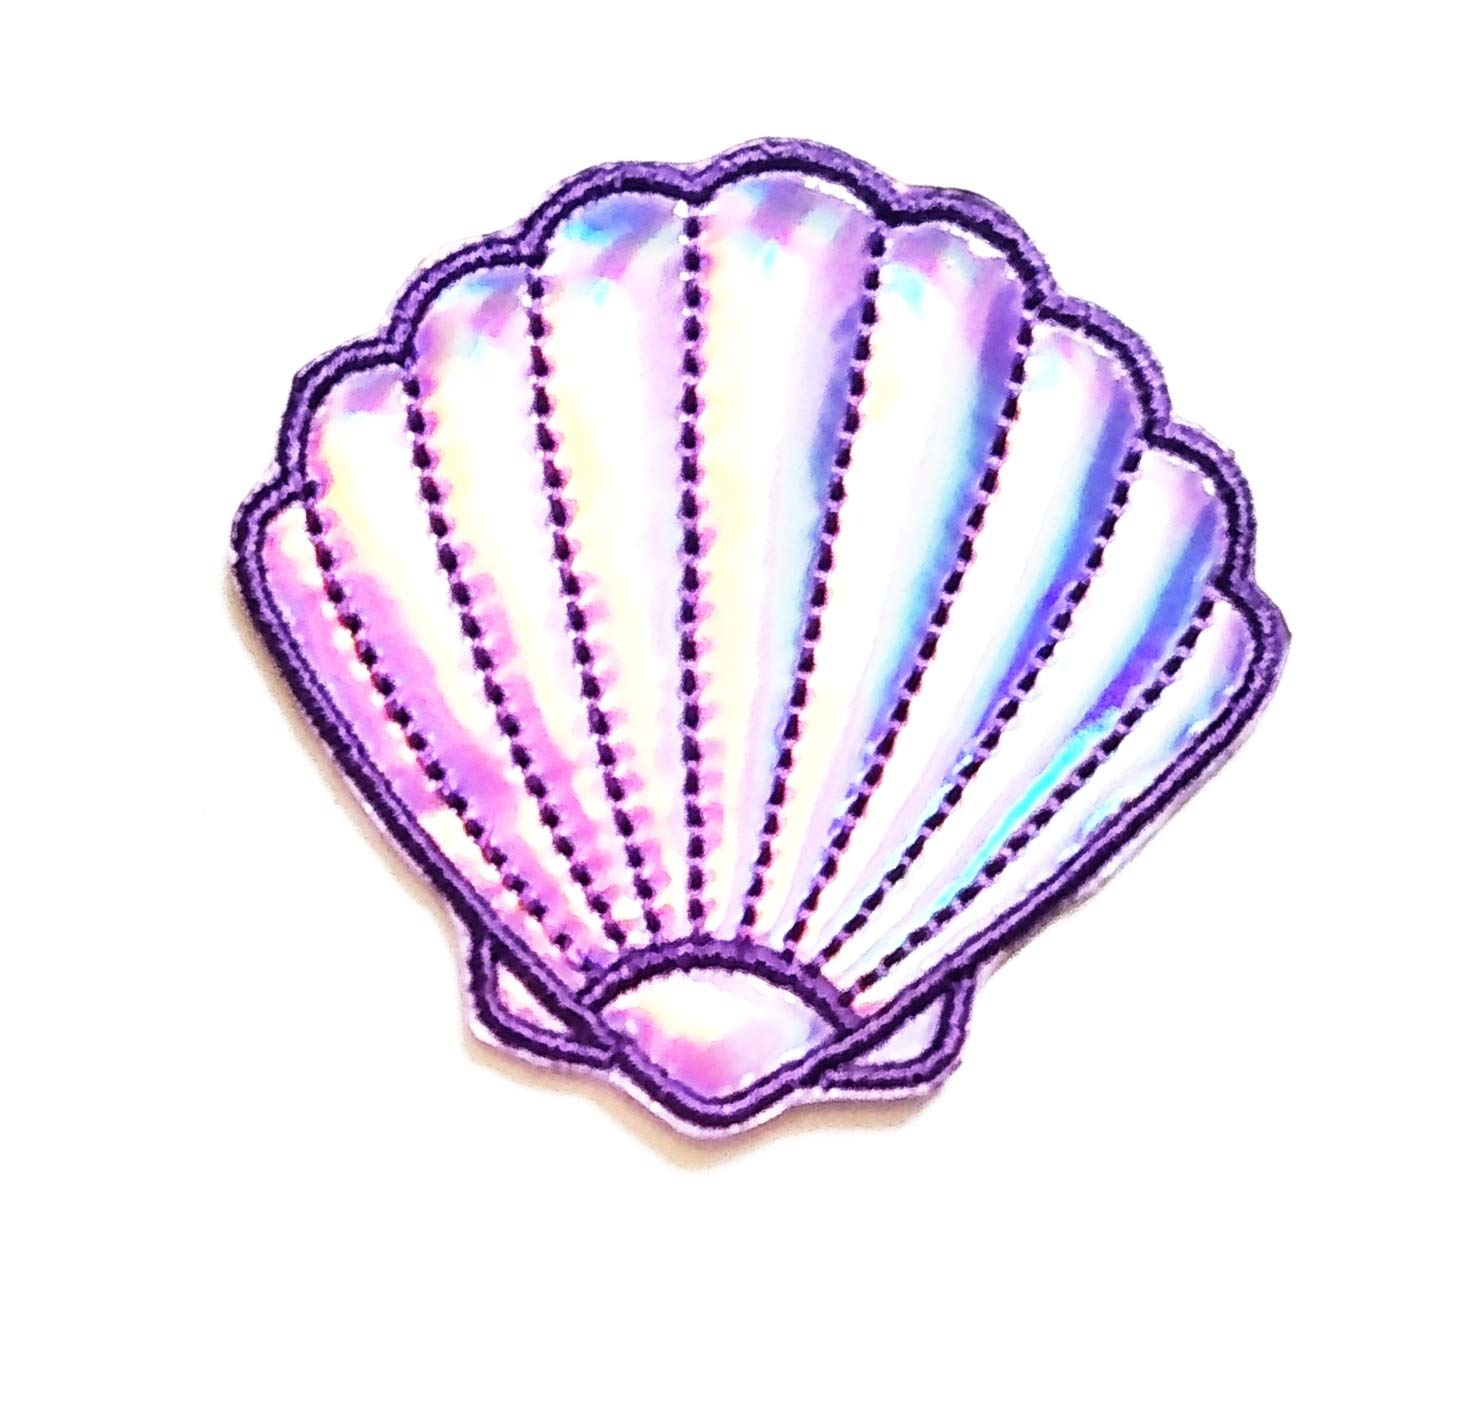 Nipitshop Patches Purple Shellfish Patch Shell Shellfish Sea Life Cartoon Kids Patch Embroidered Iron On Patch for Clothes Backpacks T-Shirt Jeans Skirt Vests Scarf Hat Bag